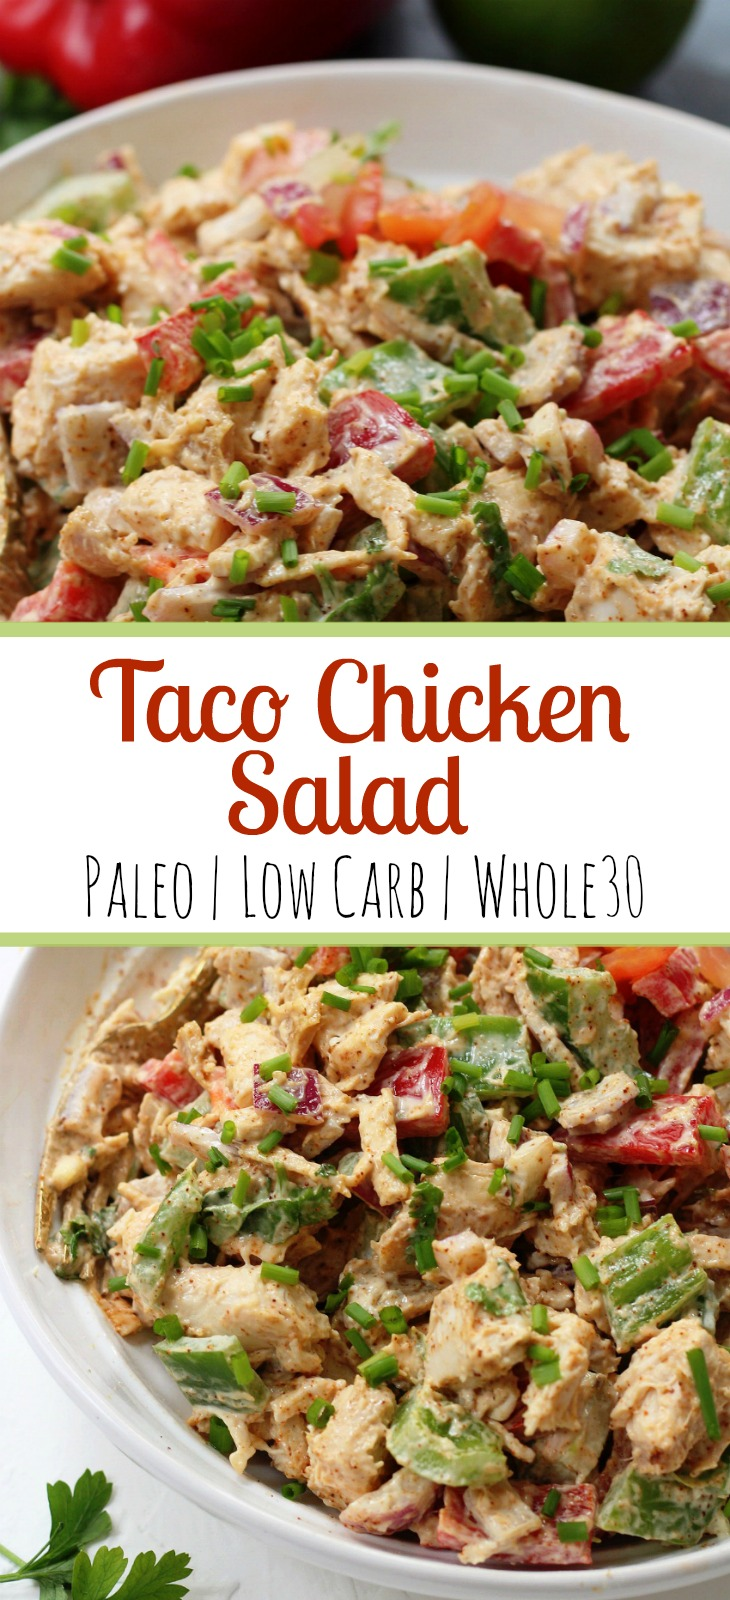 This easy taco chicken salad is a family friendly paleo recipe that only takes 15 minutes to whip together. No cooking needed! It's a great Whole30 salad for meal prep or Whole30 side dish for any event! #paleochickensalad #whole30chickensalad #whole30side